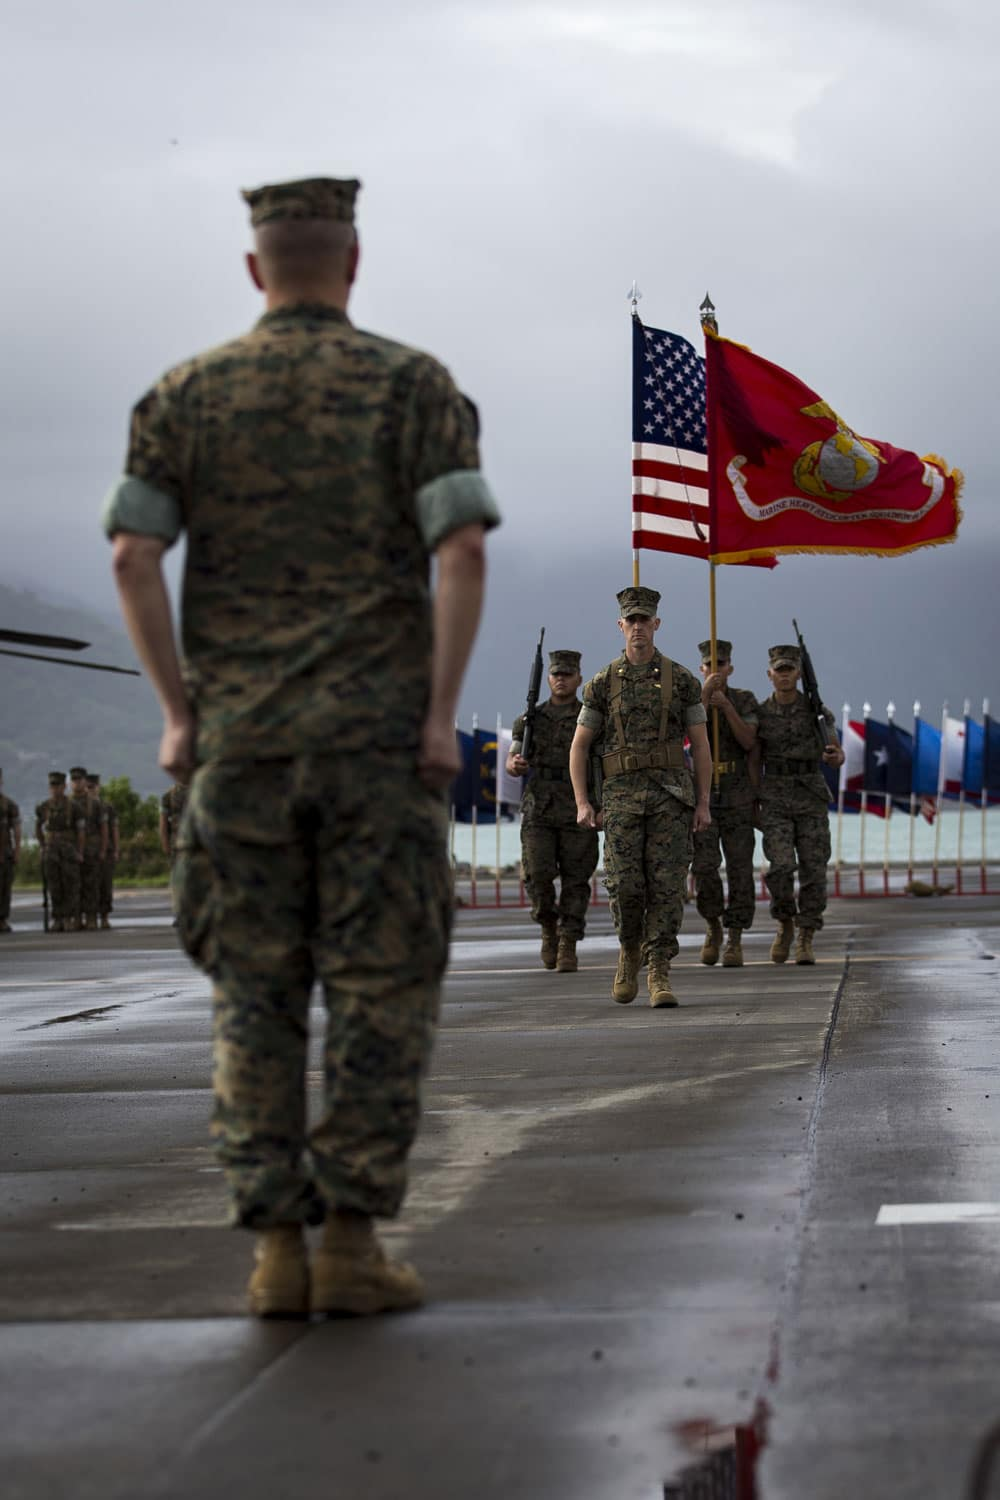 U.S. Marine Corps Maj. David J. Bachta, commander of troops for the Marine Heavy Helicopter Squadron 463 Change of Command, marches the colors.